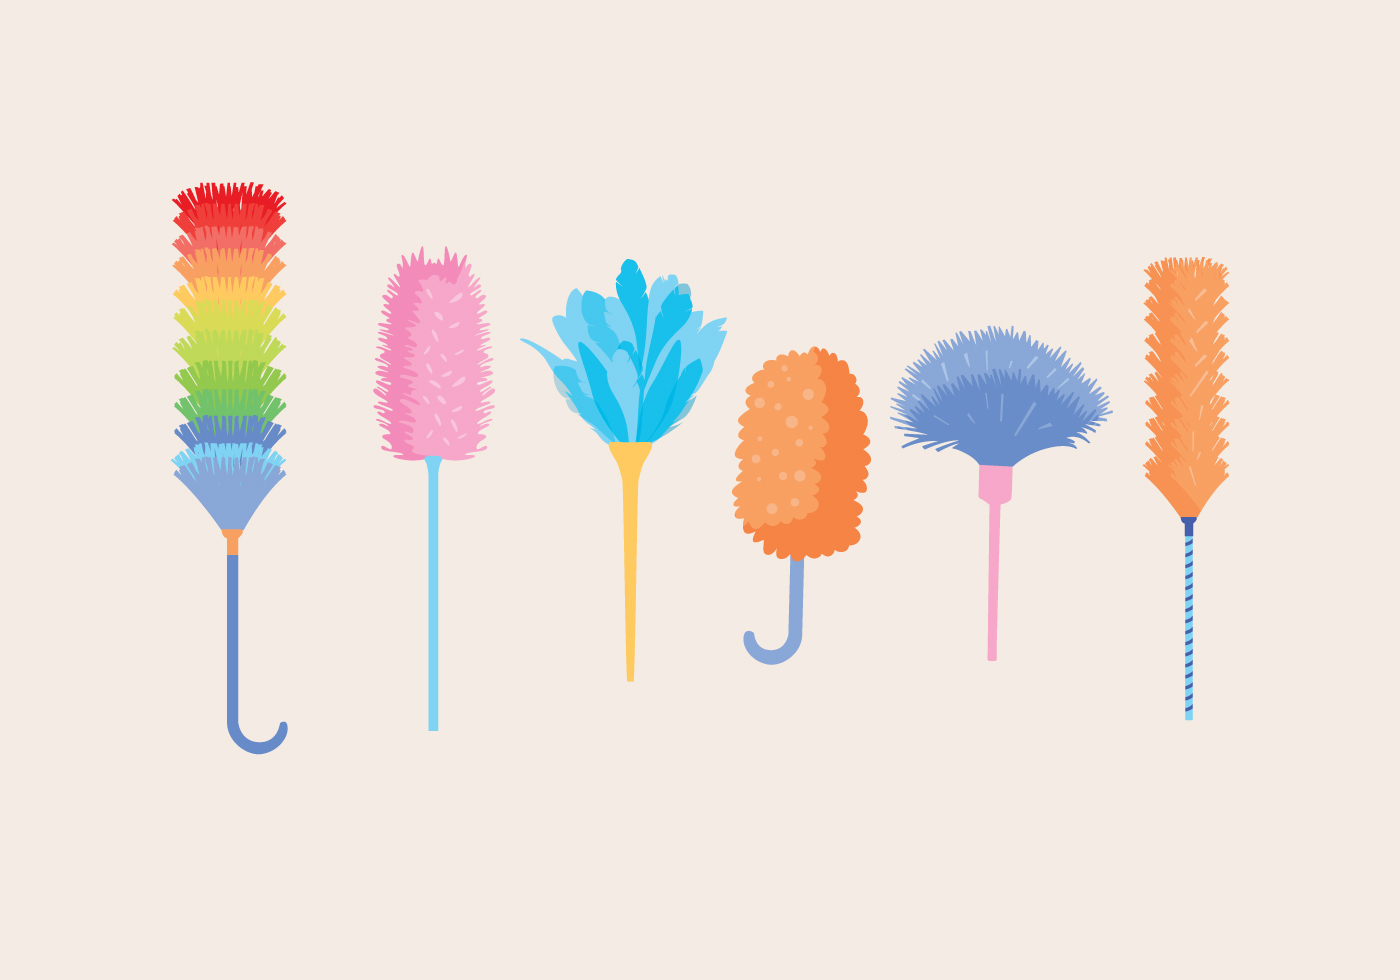 Feather Duster Vector - Download Free Vector Art, Stock Graphics ...